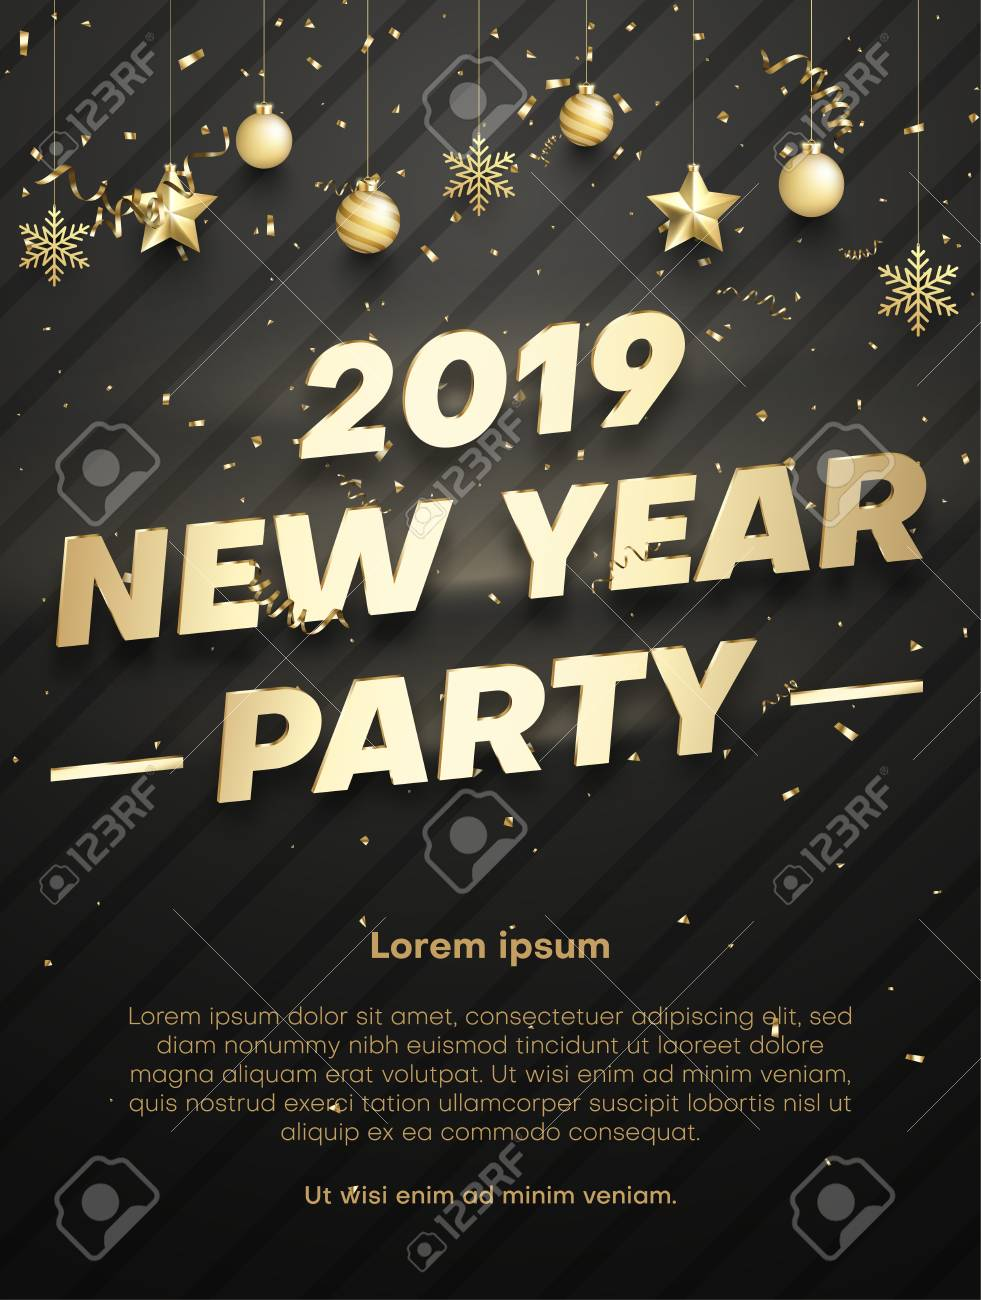 new year 2019 party poster or invitation template with golden christmas balls and confetti vector